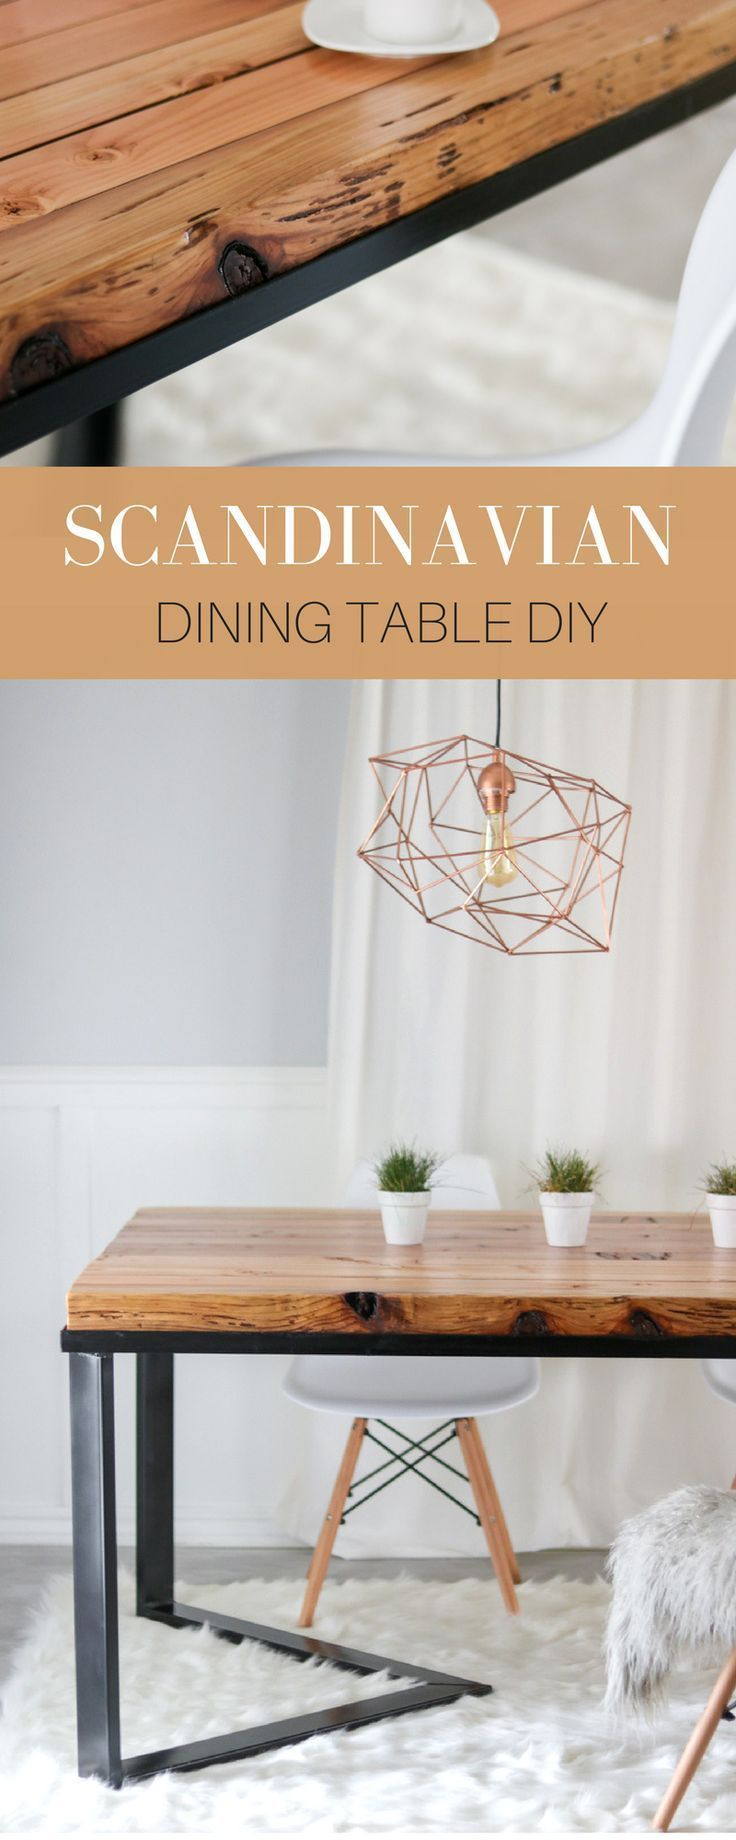 Diy Scandinavian Dining Table How We Made Our Dining Table For Under 60 Diningtablede Scandinavian Dining Table Diy Dining Room Table Diy Dining Table